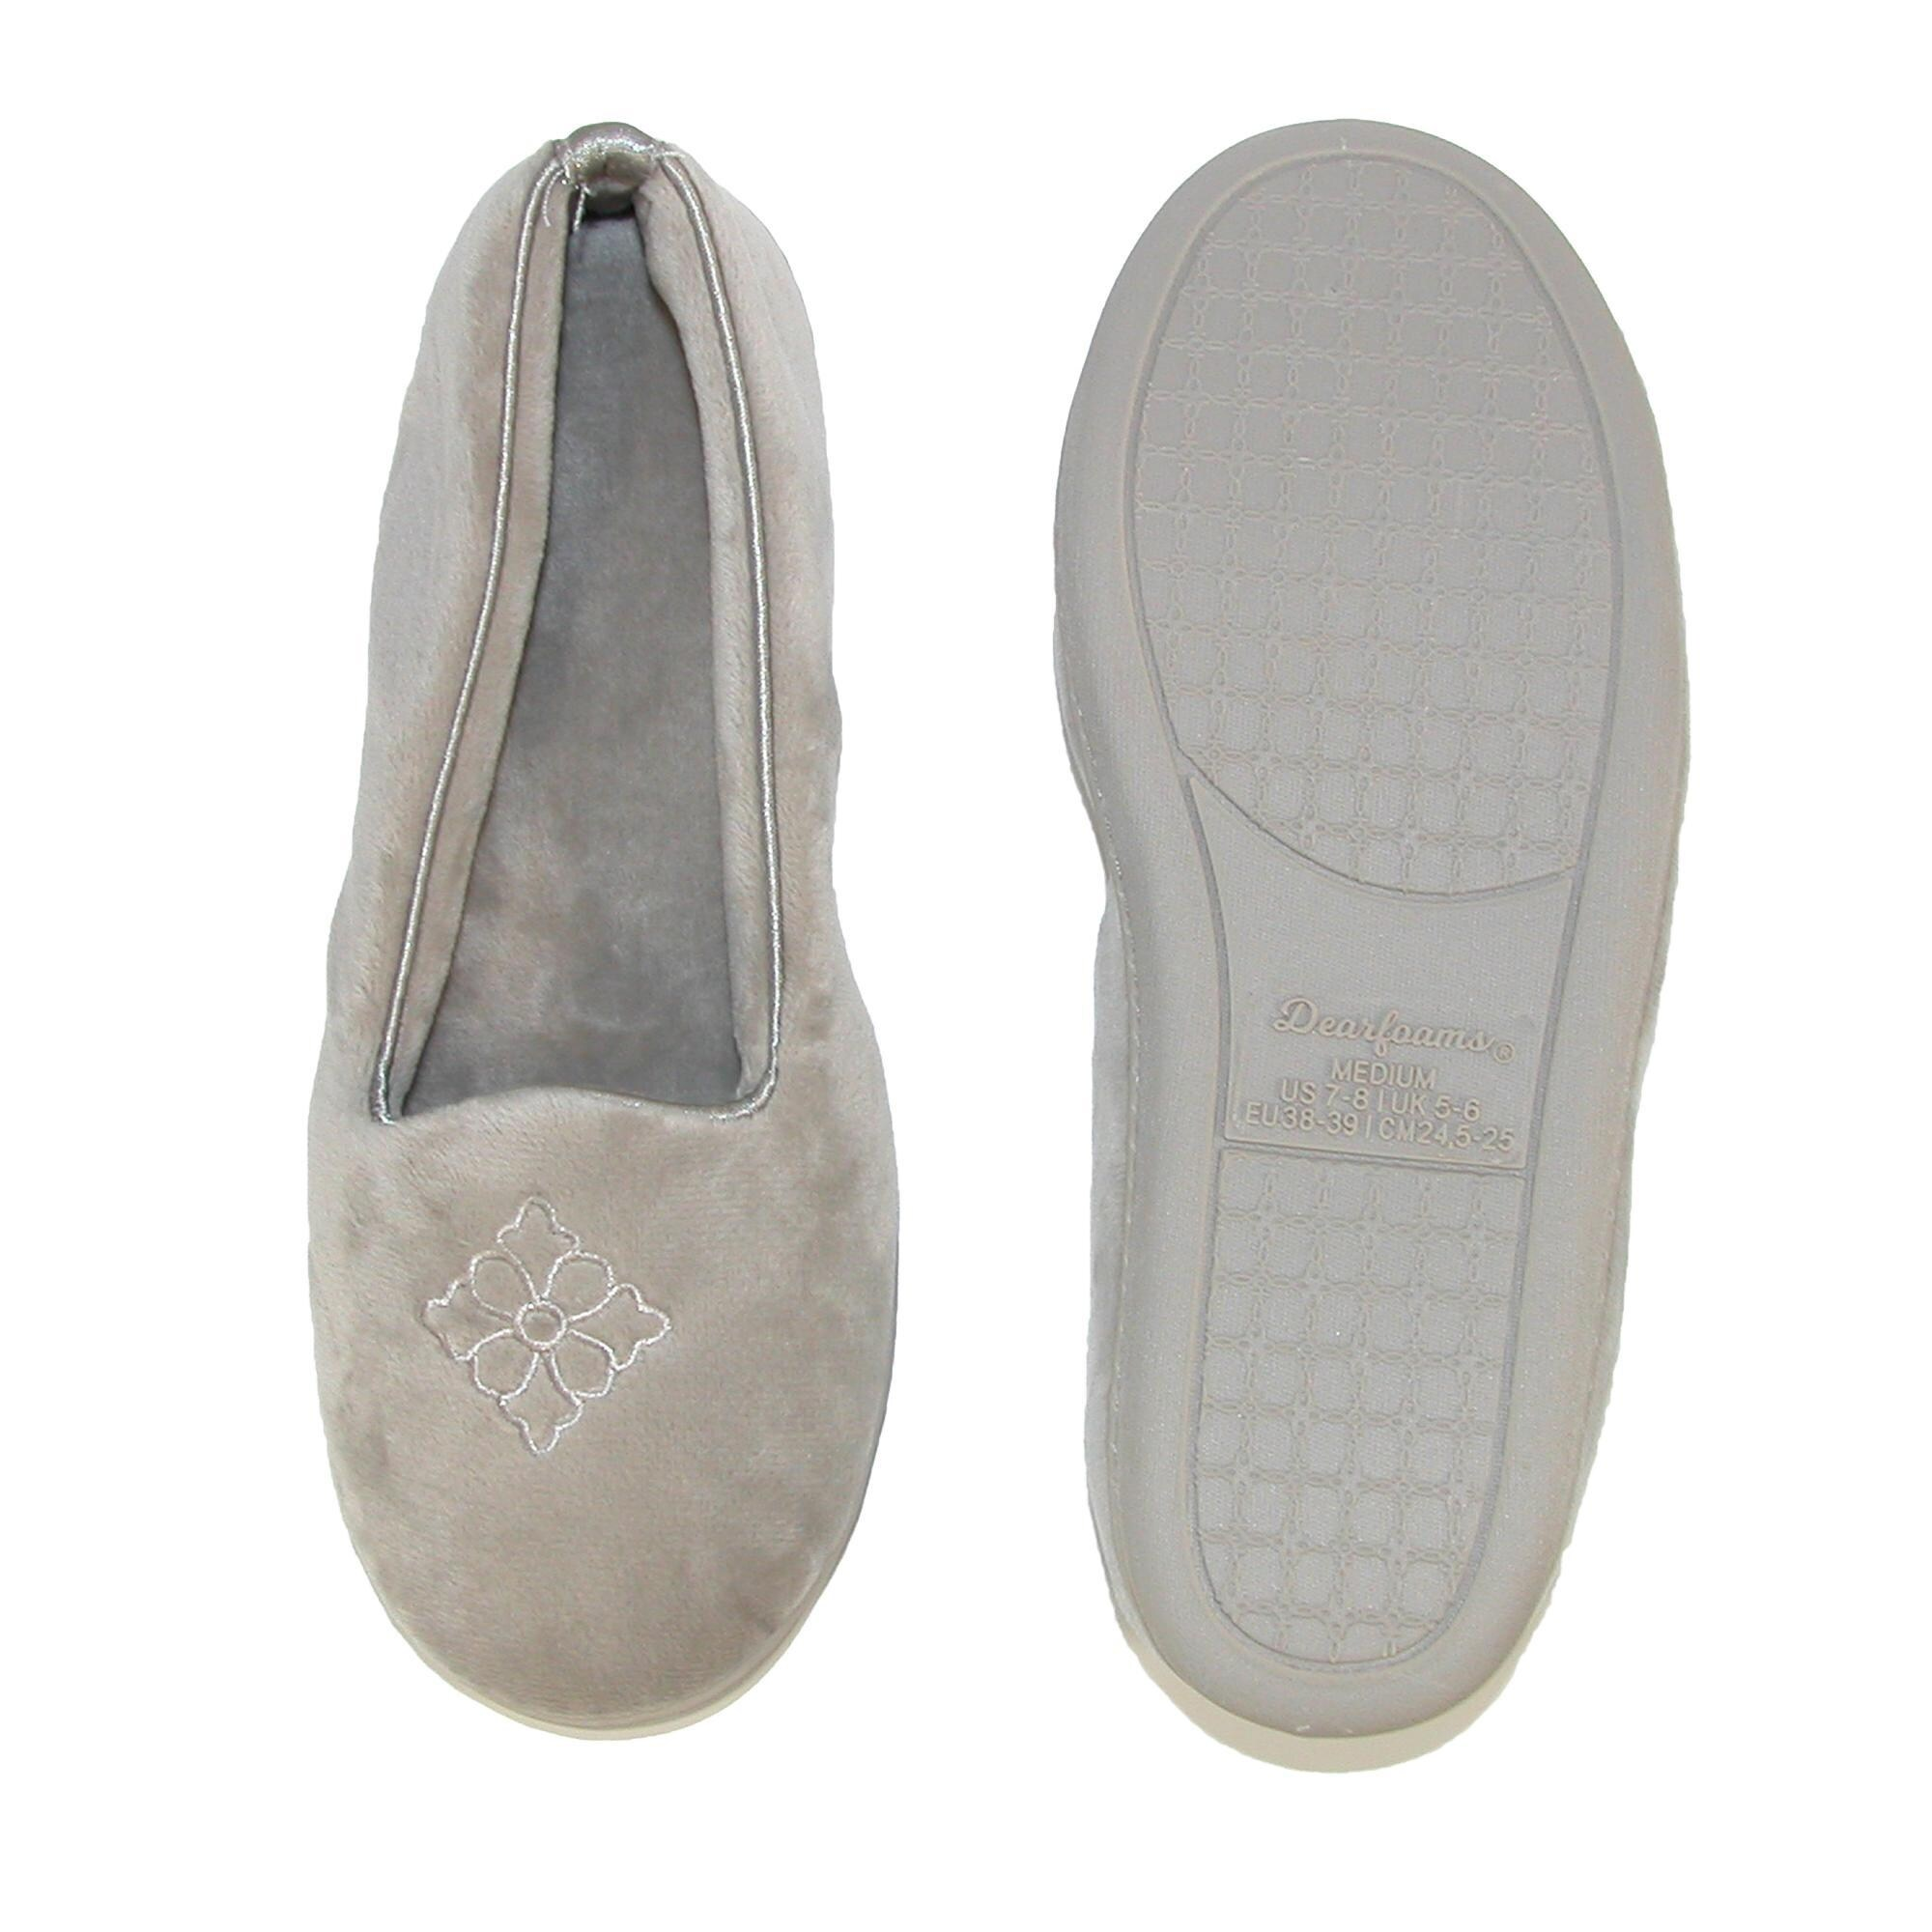 a731339bdcd4 Shop Dearfoams Women s Microfiber Velour Closed Back Slippers - Free  Shipping On Orders Over  45 - Overstock - 15421750